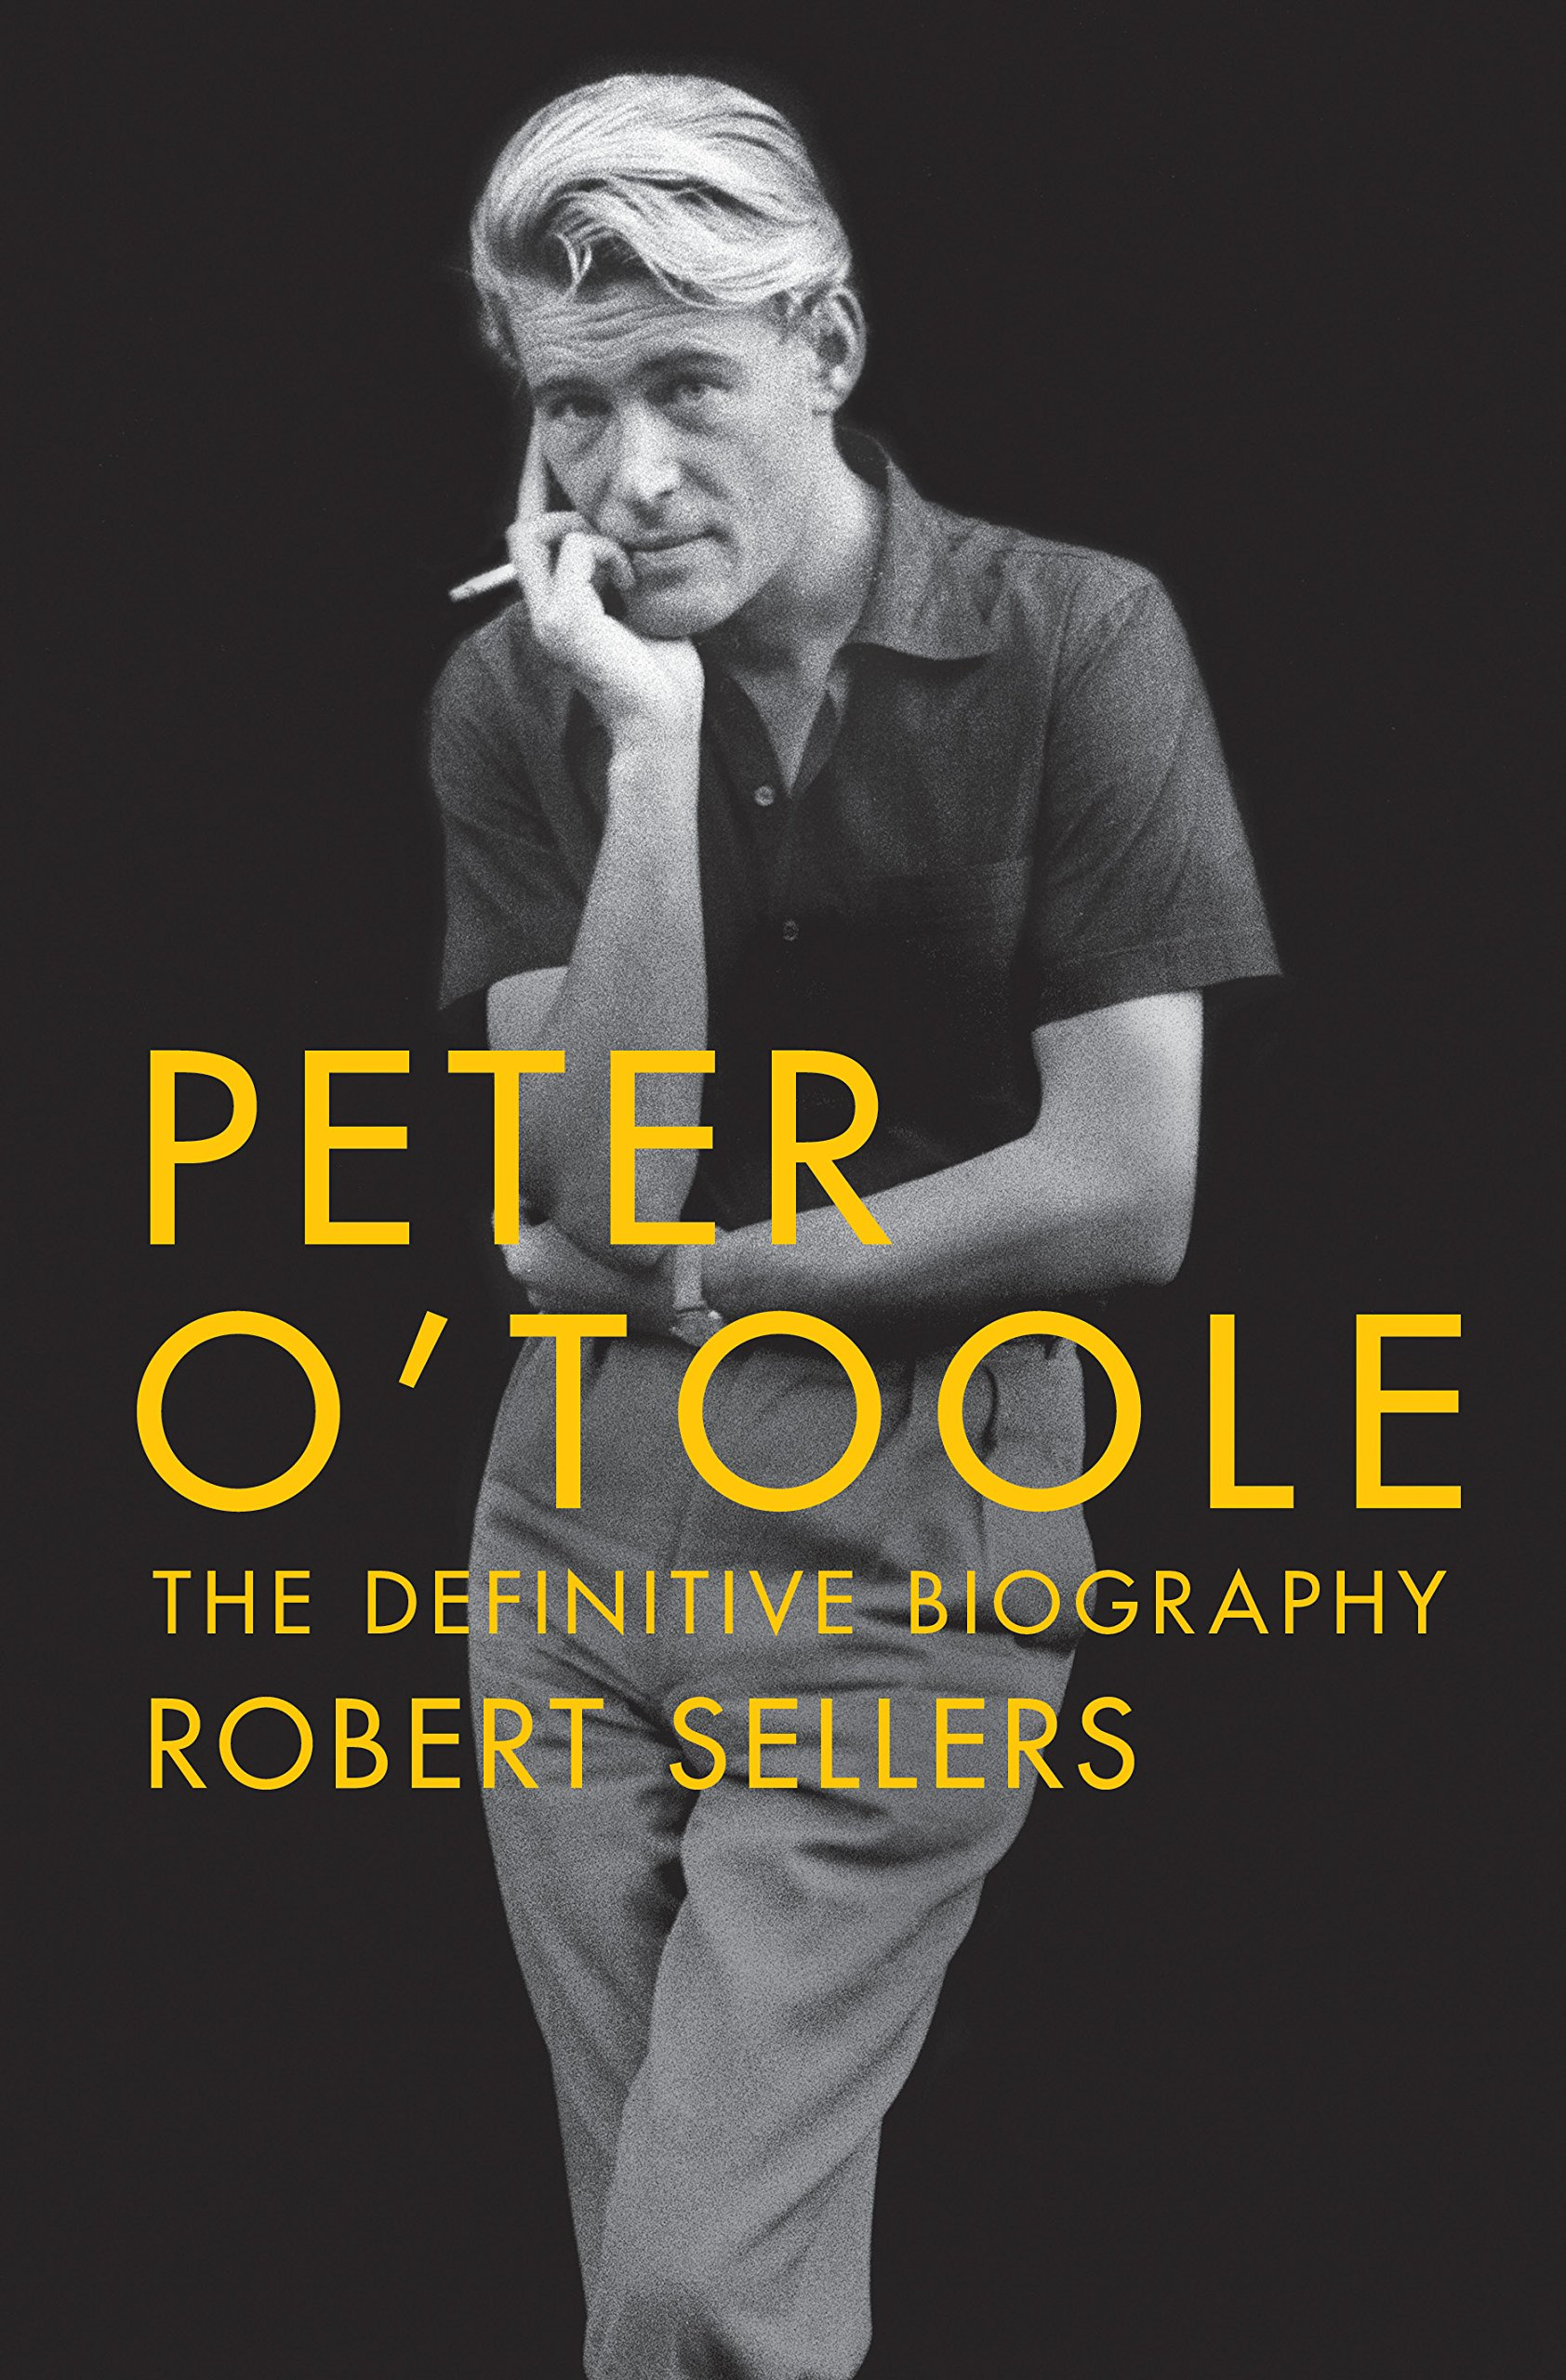 Peter Ou0027Toole: The Definitive Biography: Robert Sellers: 9781250095947:  Amazon.com: Books